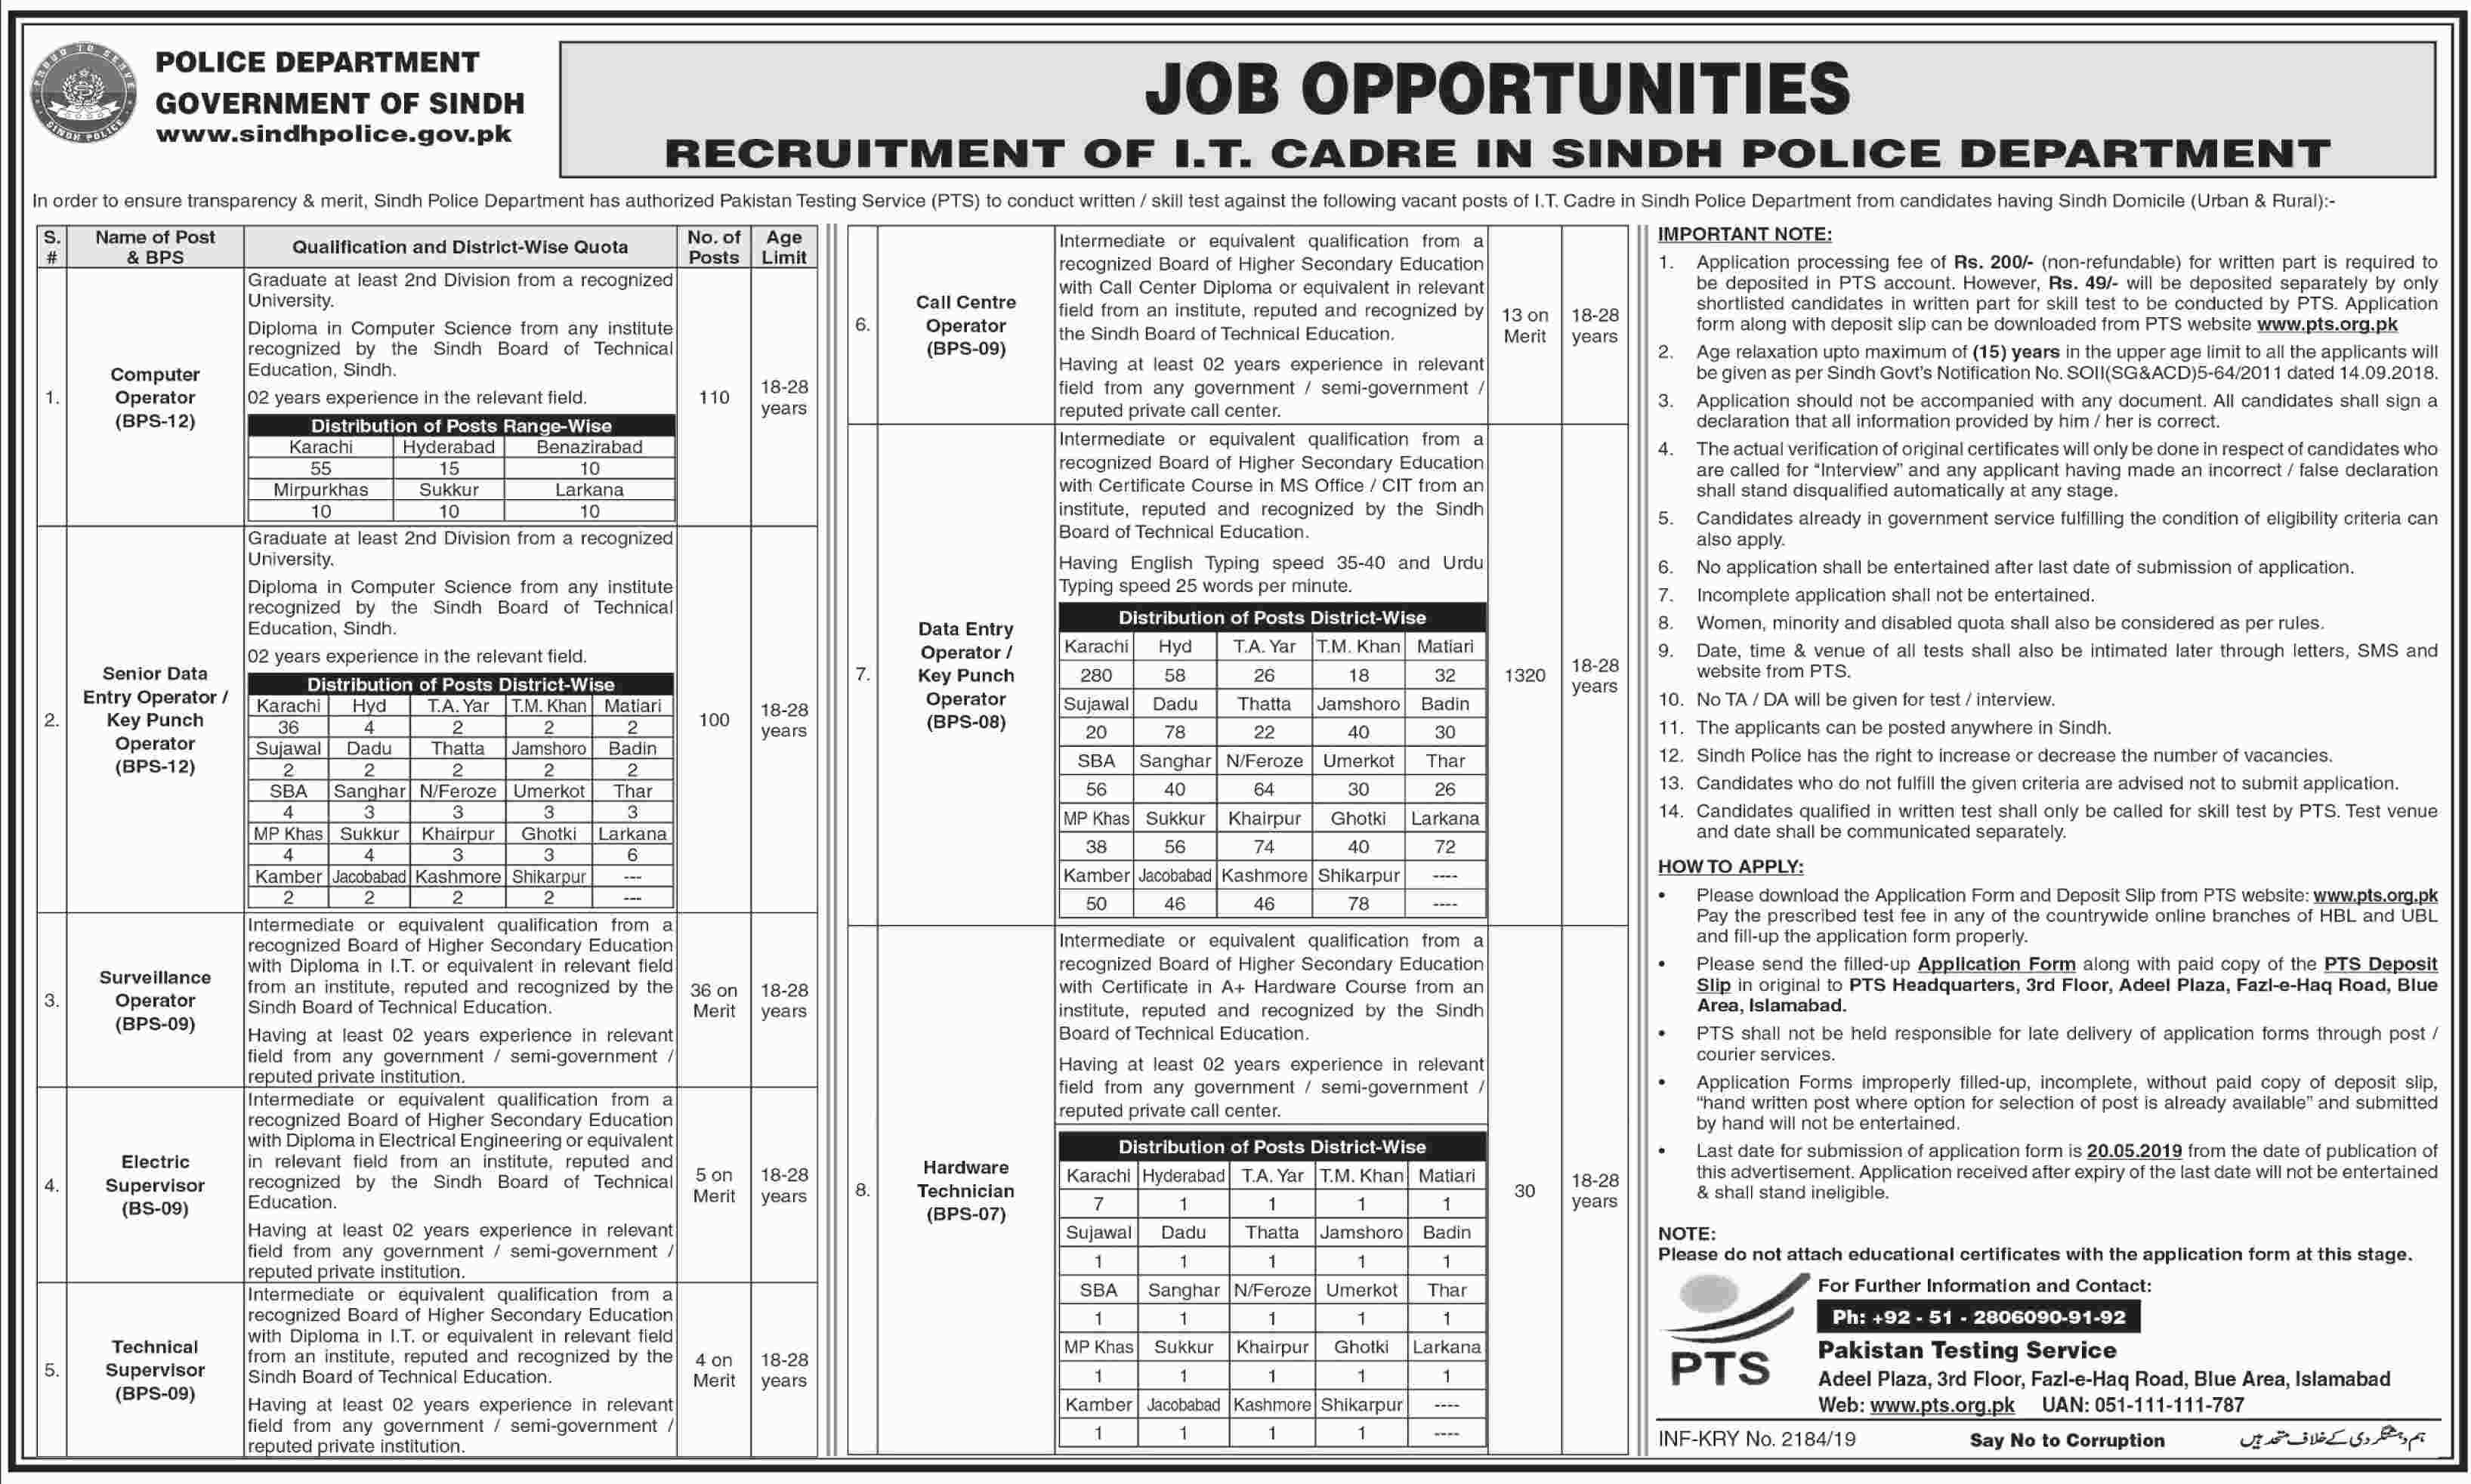 Sindh Police Department Information Technology Cadre Jobs PTS Test Result